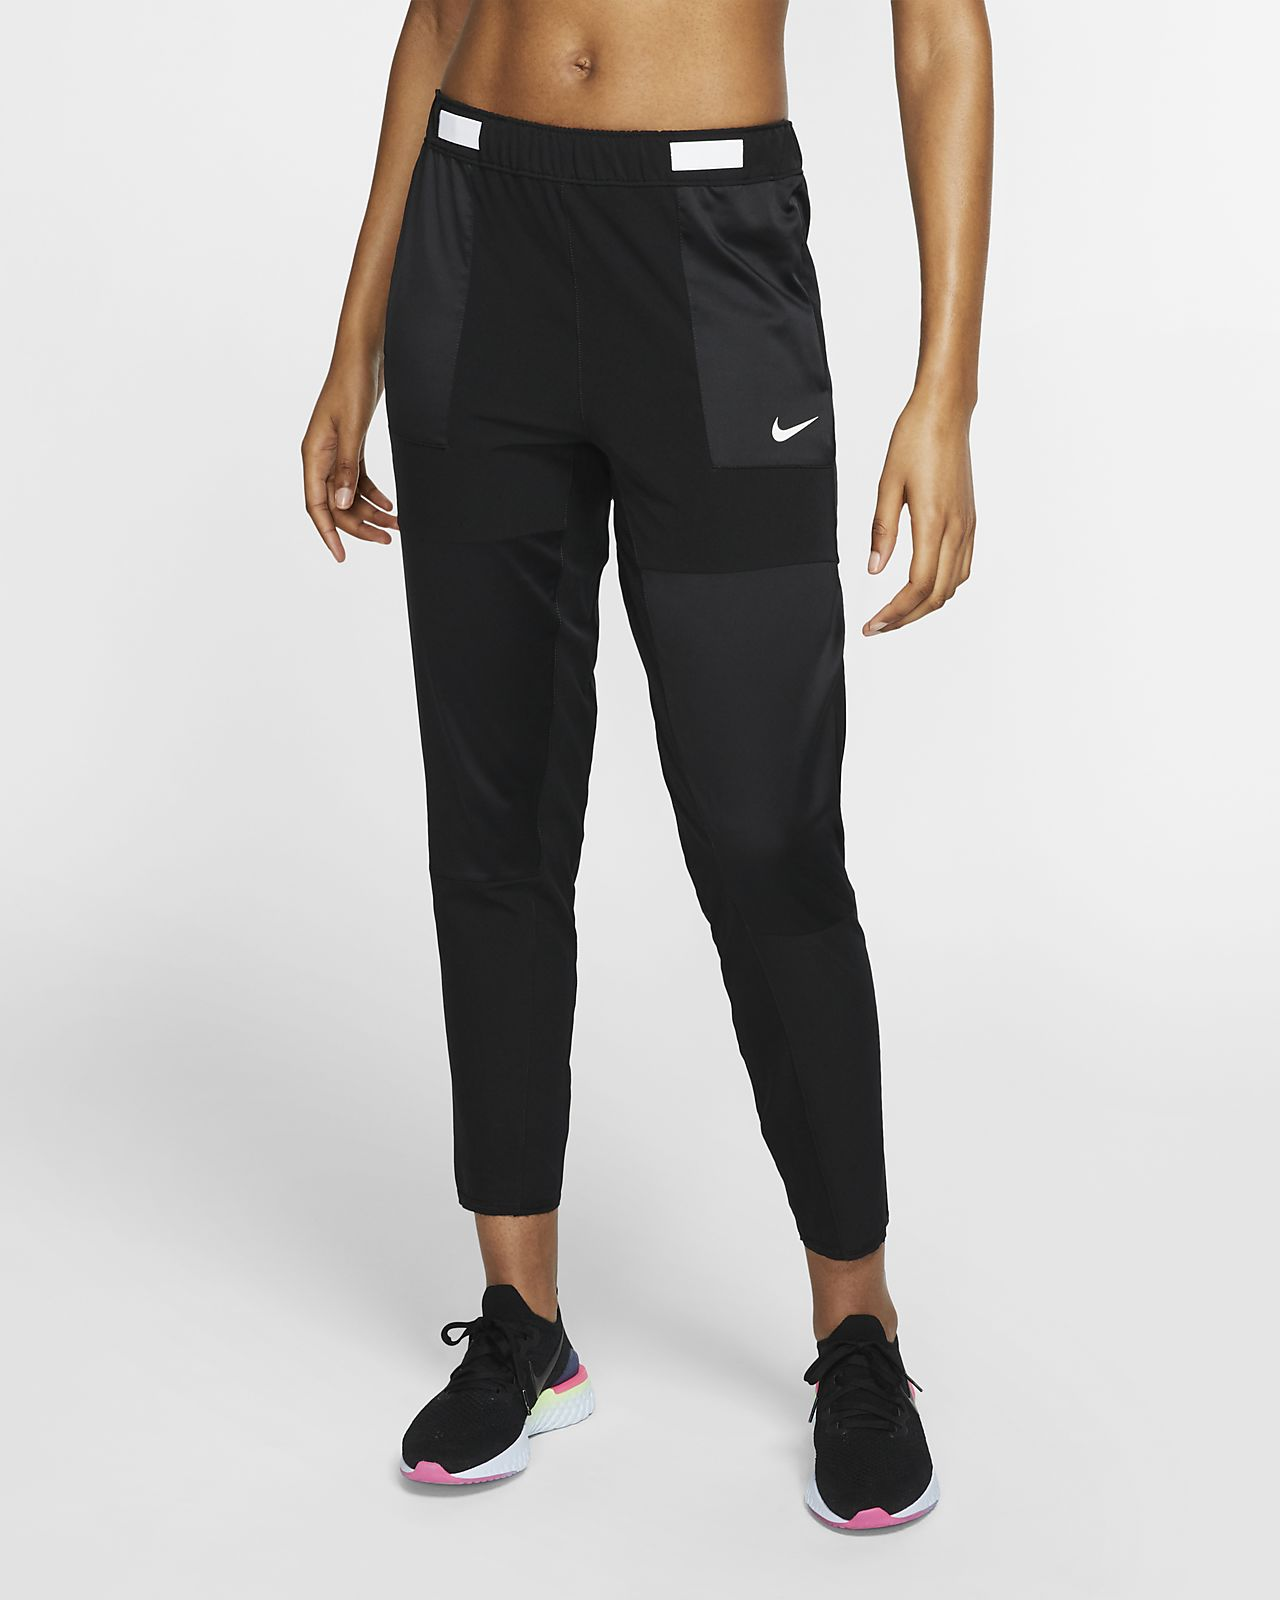 Nike Women's 7/8 Running Trousers